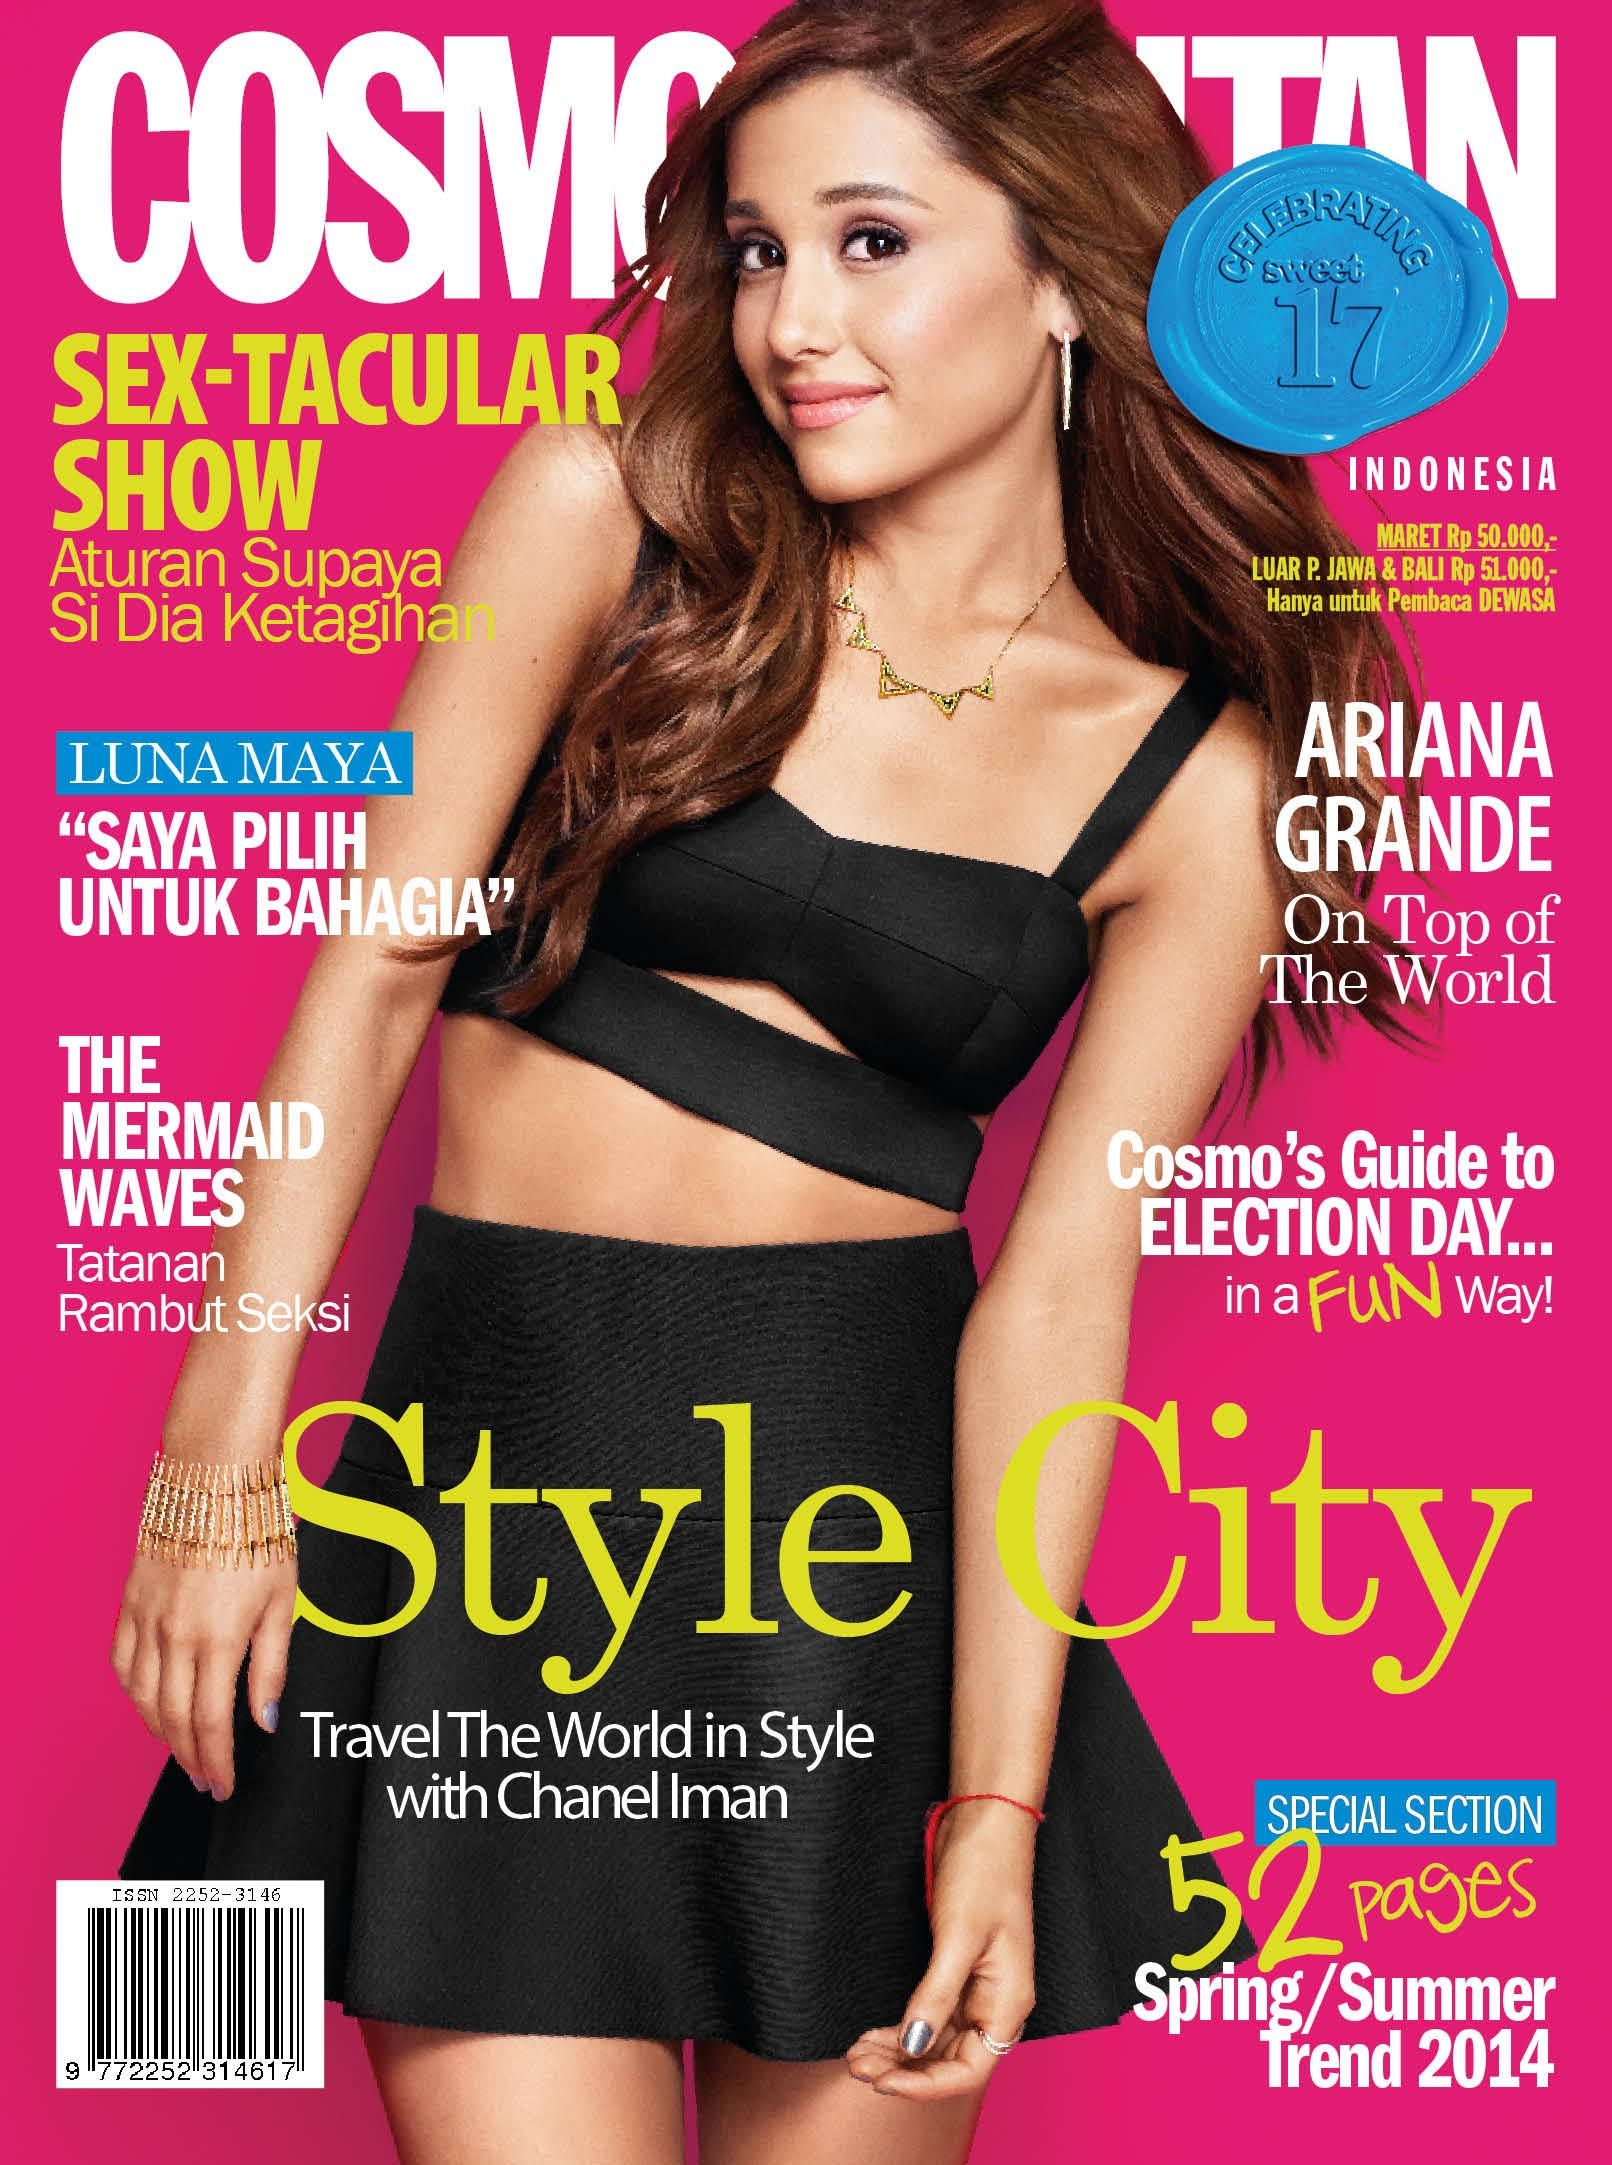 Young, beautiful and talented, that's why we choose Ariana Grande as our March 2014 fun fearless cover girl!